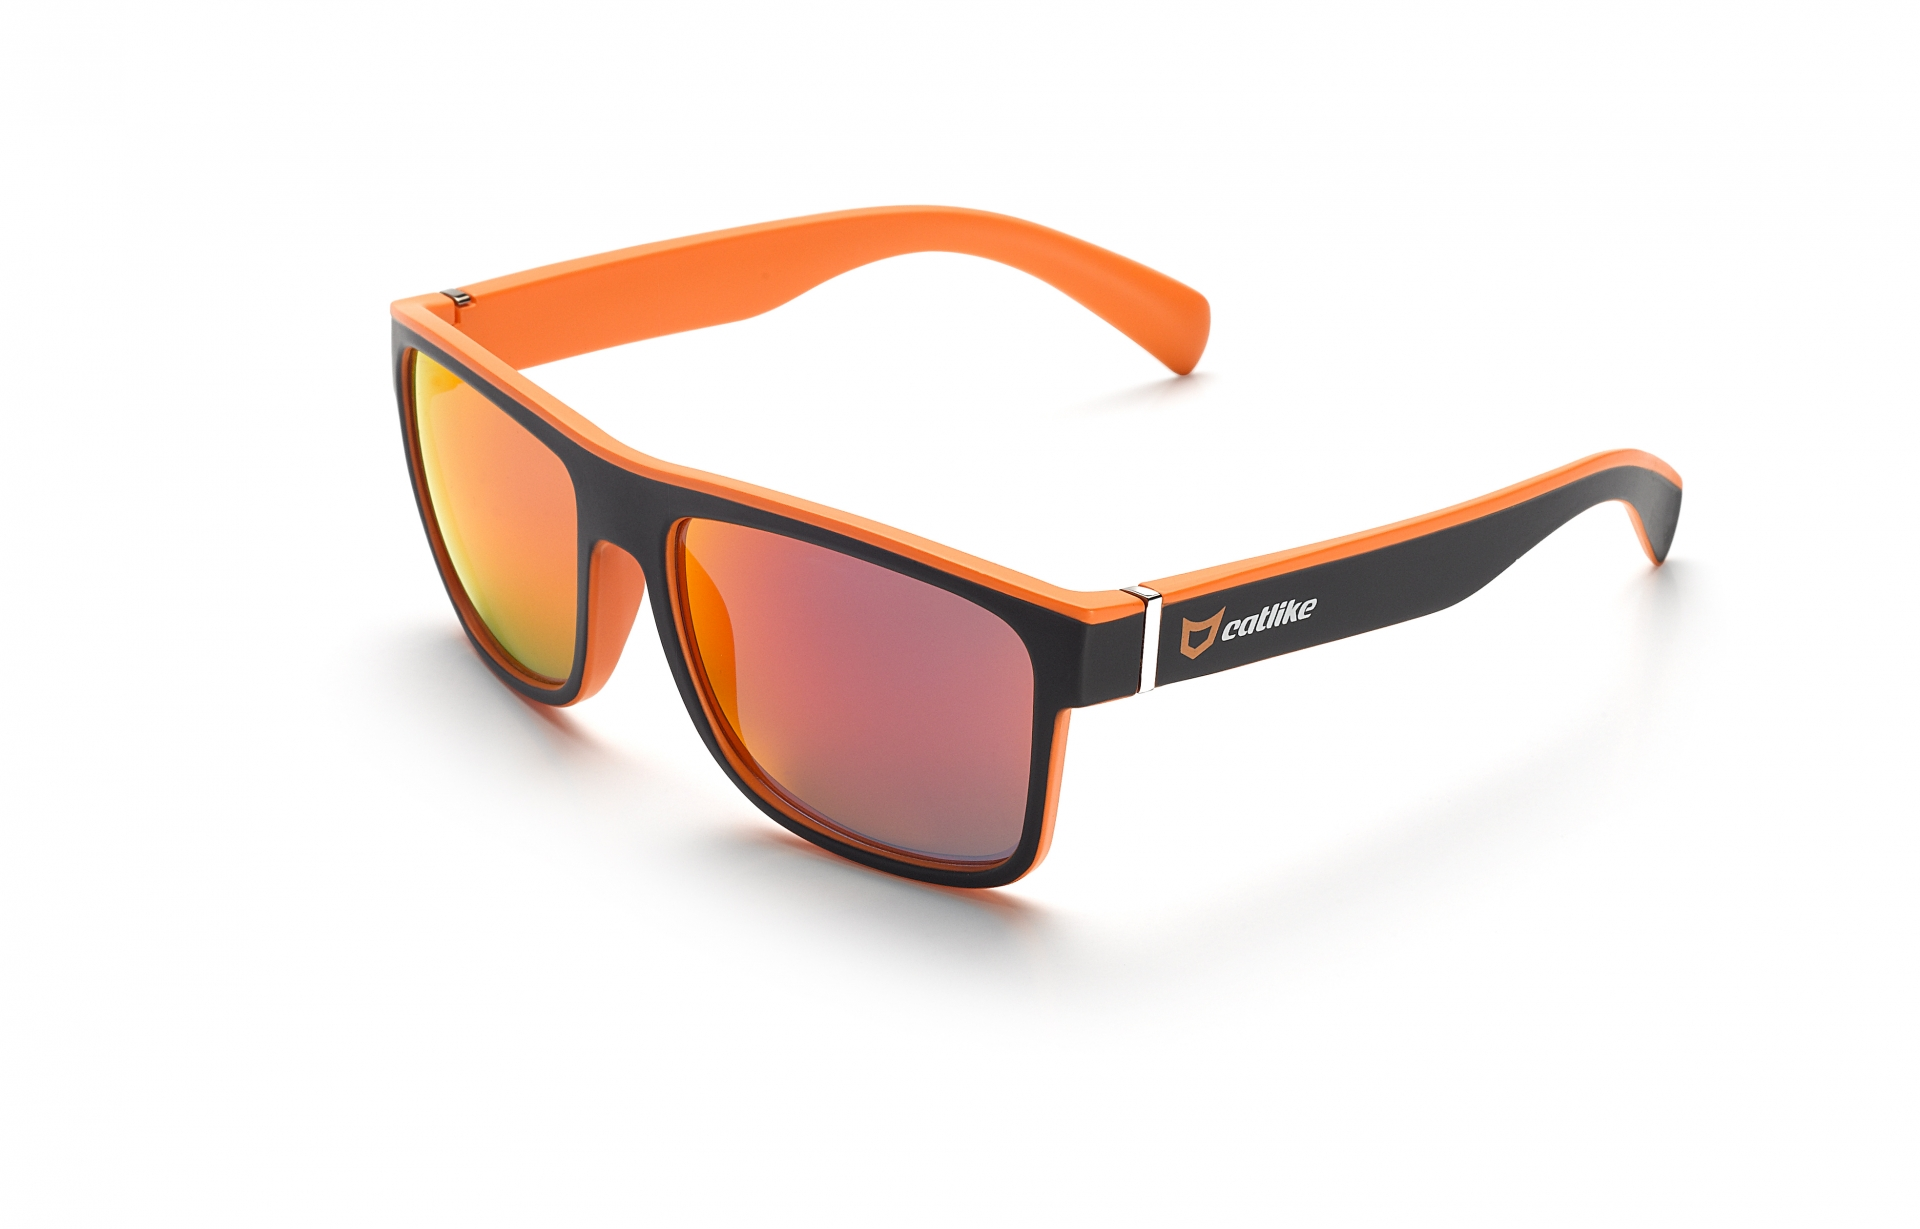 Lunettes Catlike Orange Key Noir/Orange